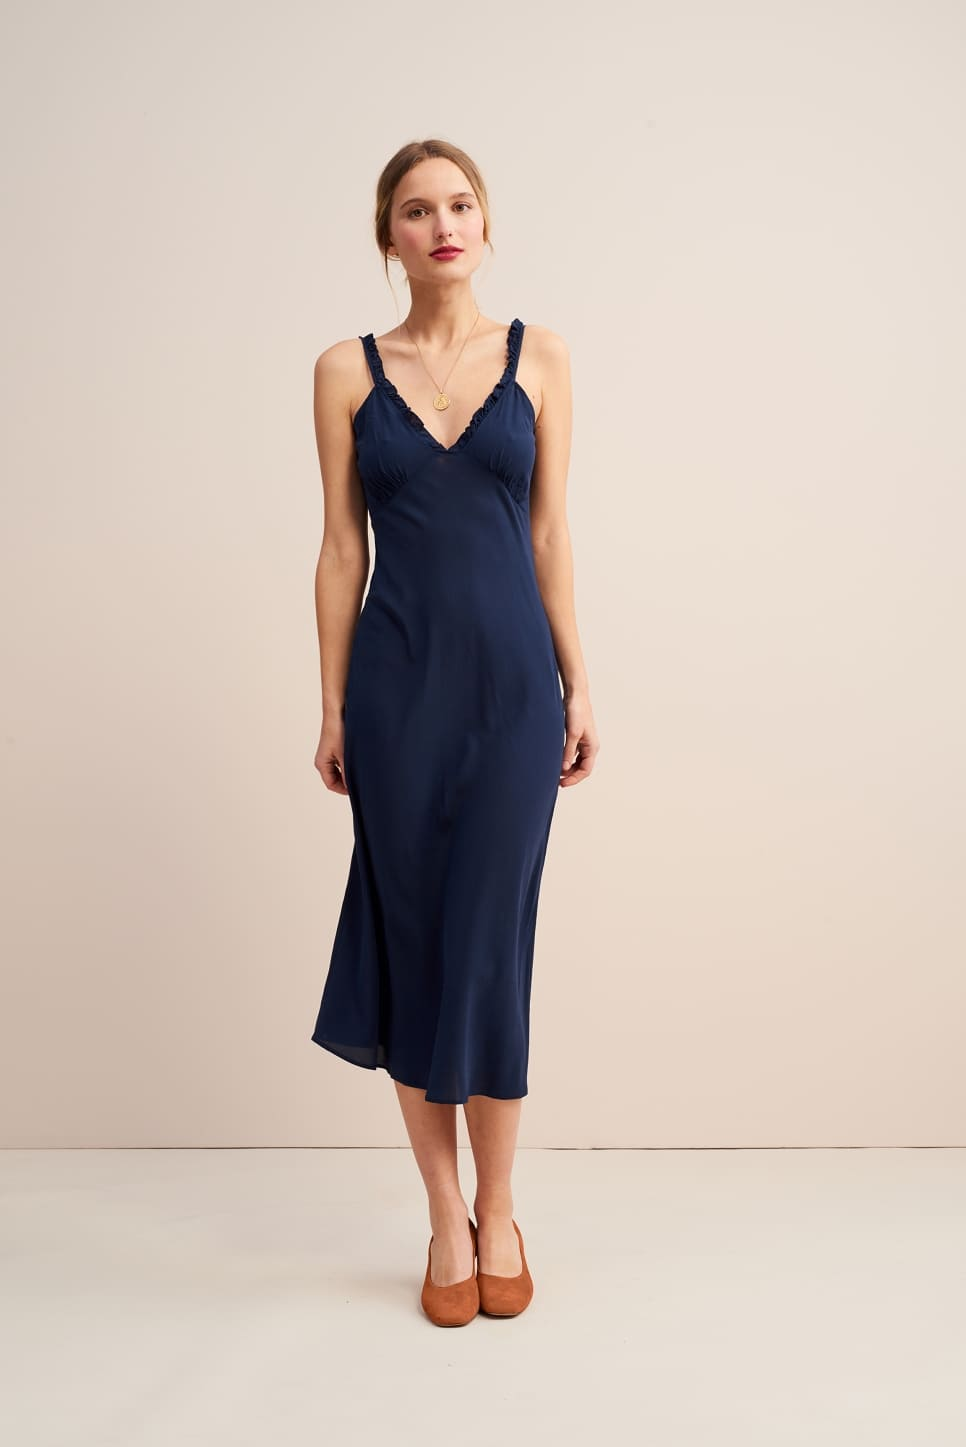 CARLITA slip dress